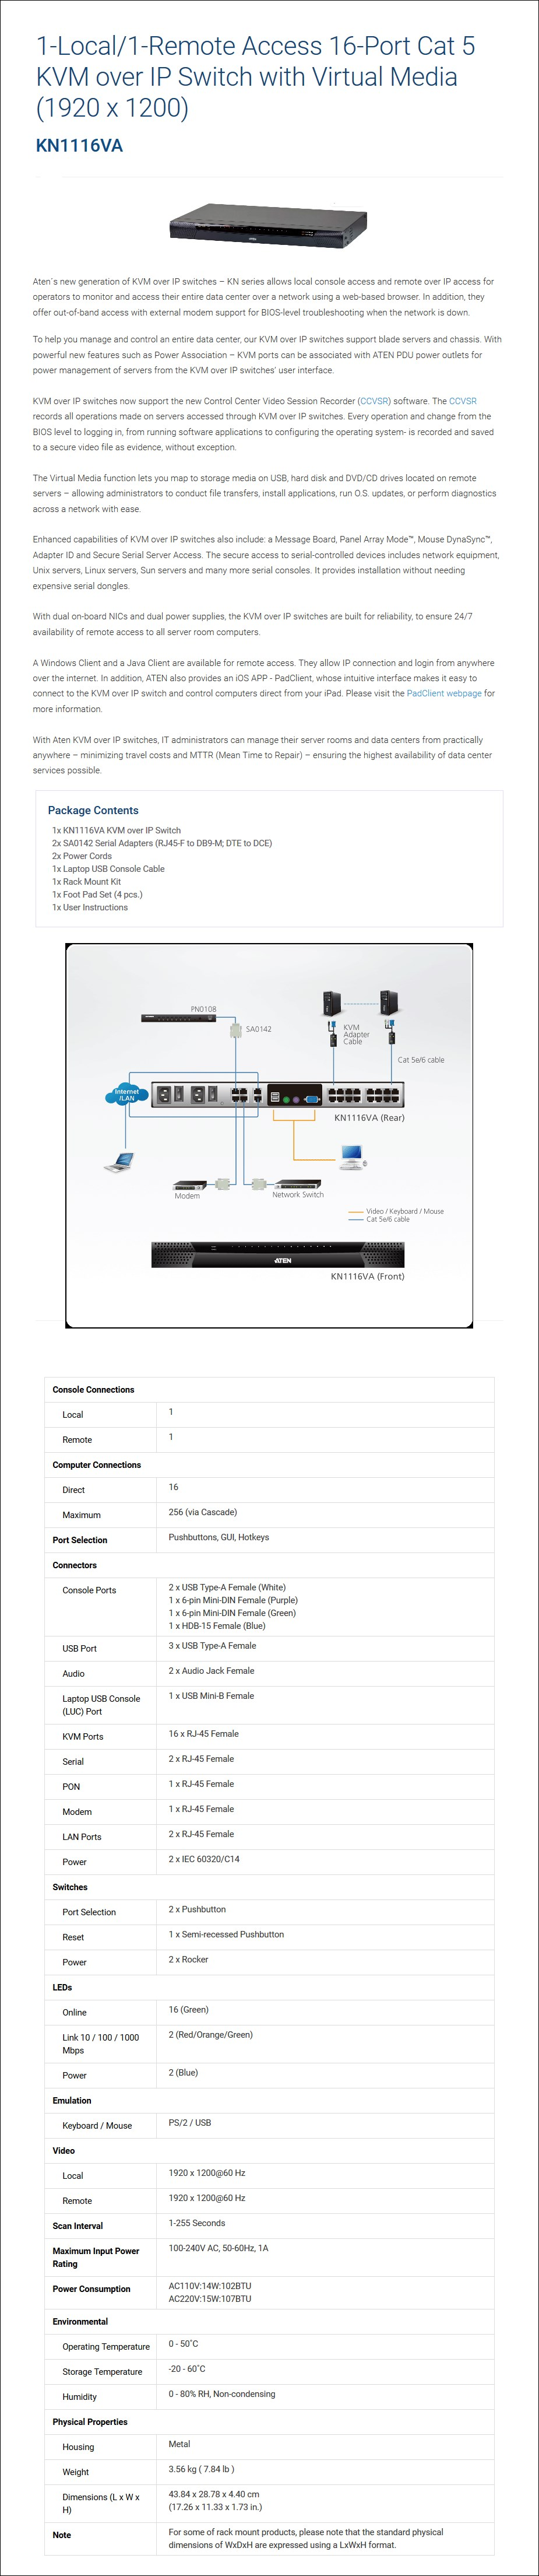 ATEN KN1116VA 1-Local/1-Remote Access 16-Port Cat 5 KVM over IP Switch with VM - Overview 1